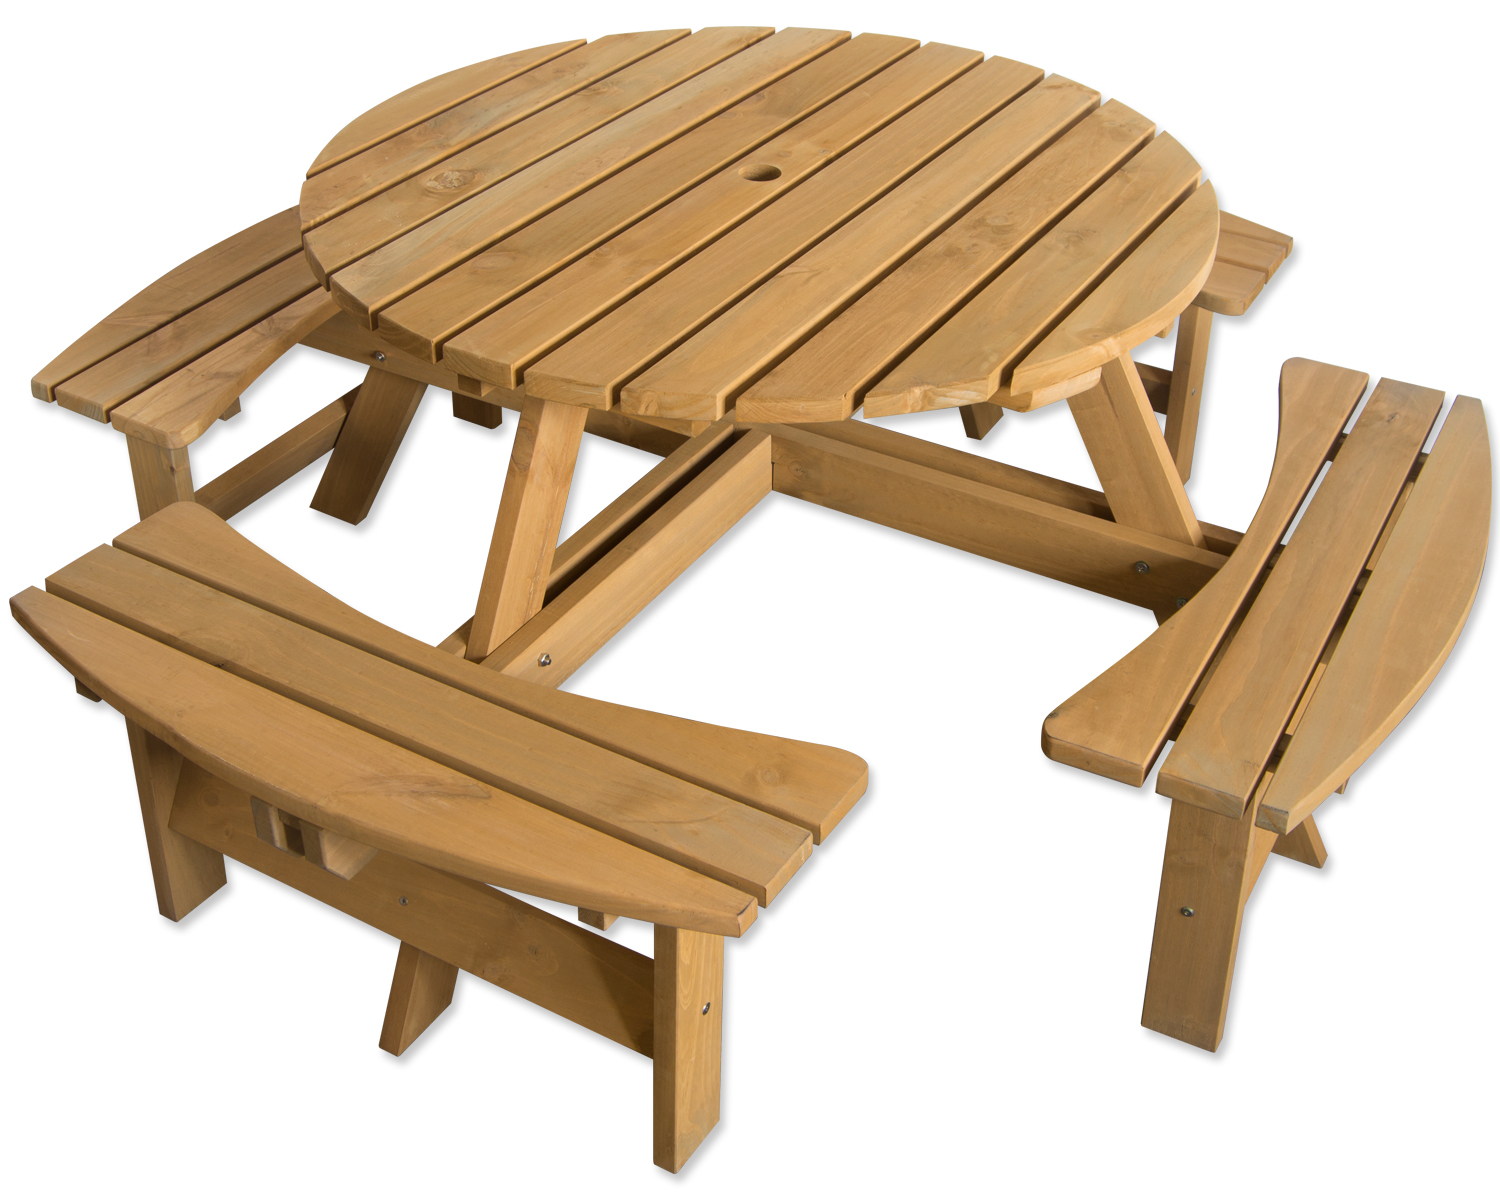 Outdoor 8 seater round bench for pub garden stained pine for Outdoor furniture 8 seater